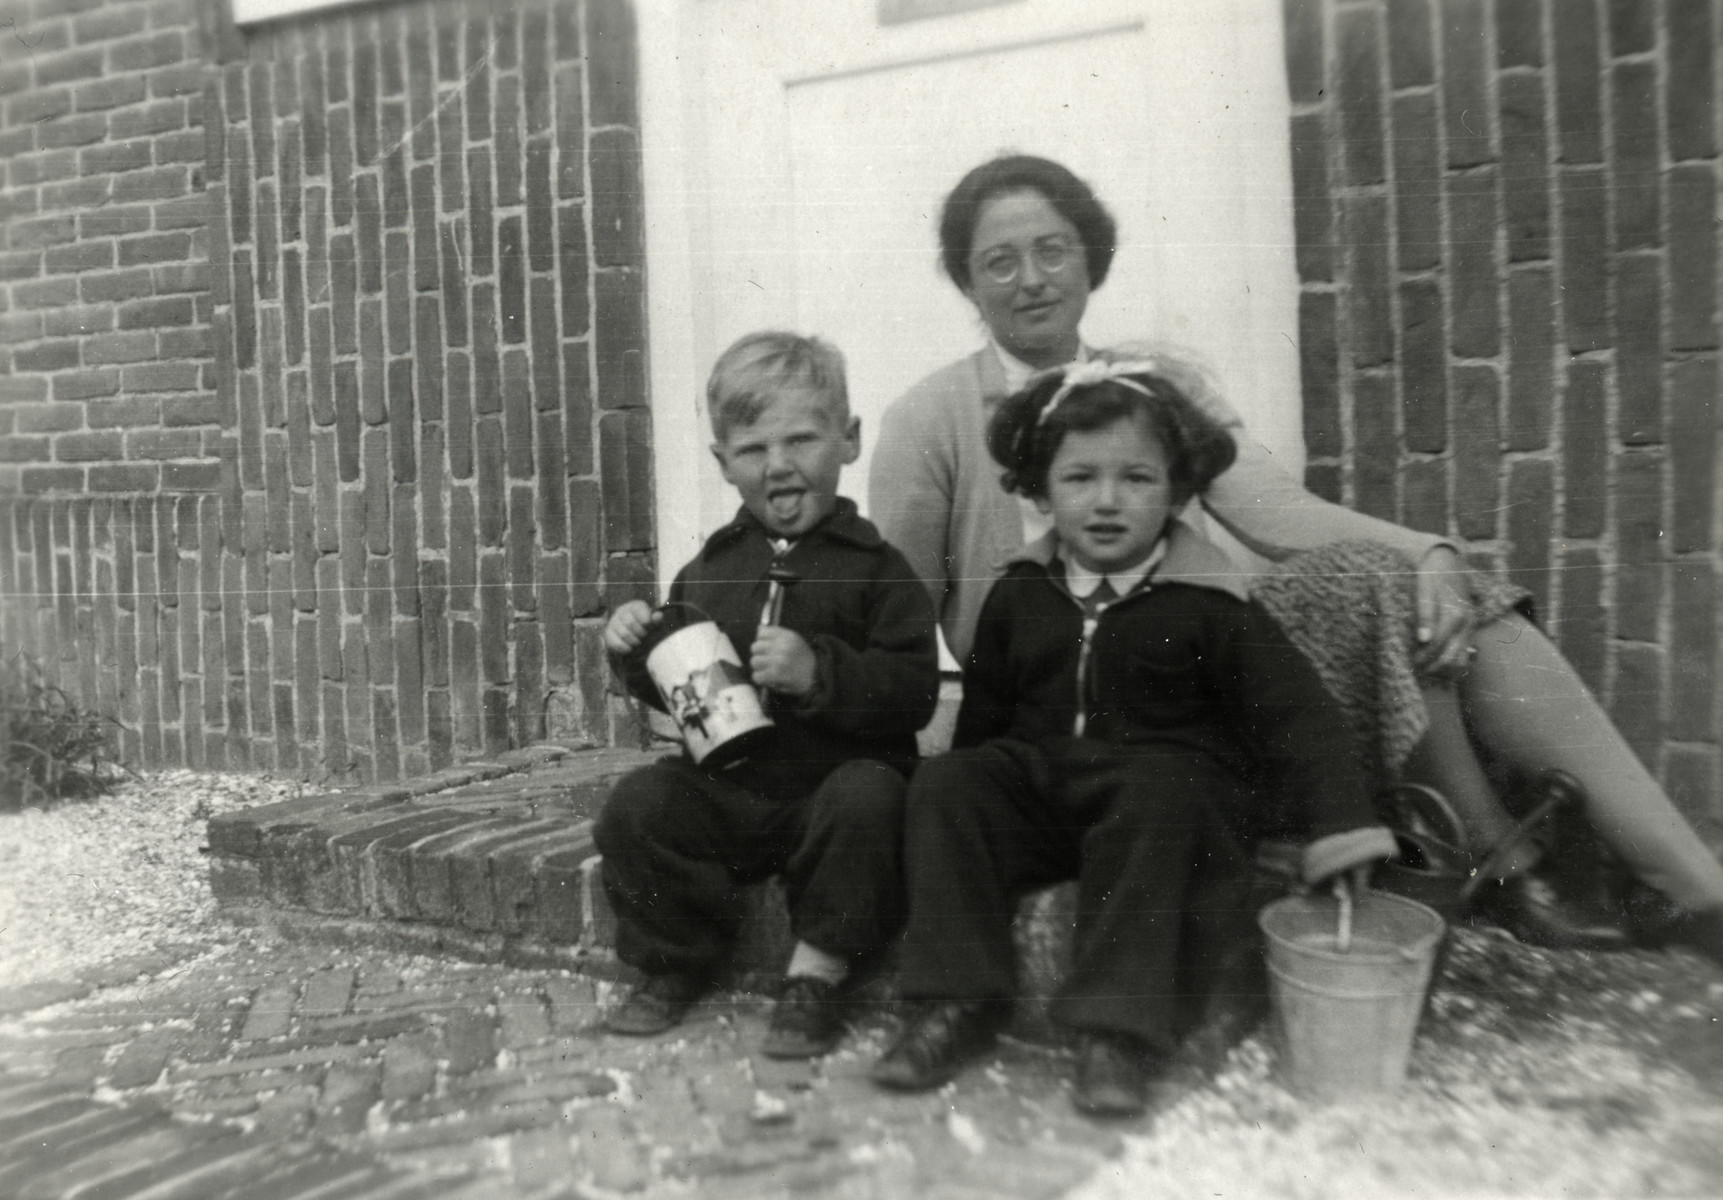 Hanan Kisch sits on the stoop of a building with his cousin Lin de Bruin and her daughter.  Lin de Bruin came to Palestine as part of a prisoner exchange for Templars with her daughter. (Her husband committed suicide in 1940).